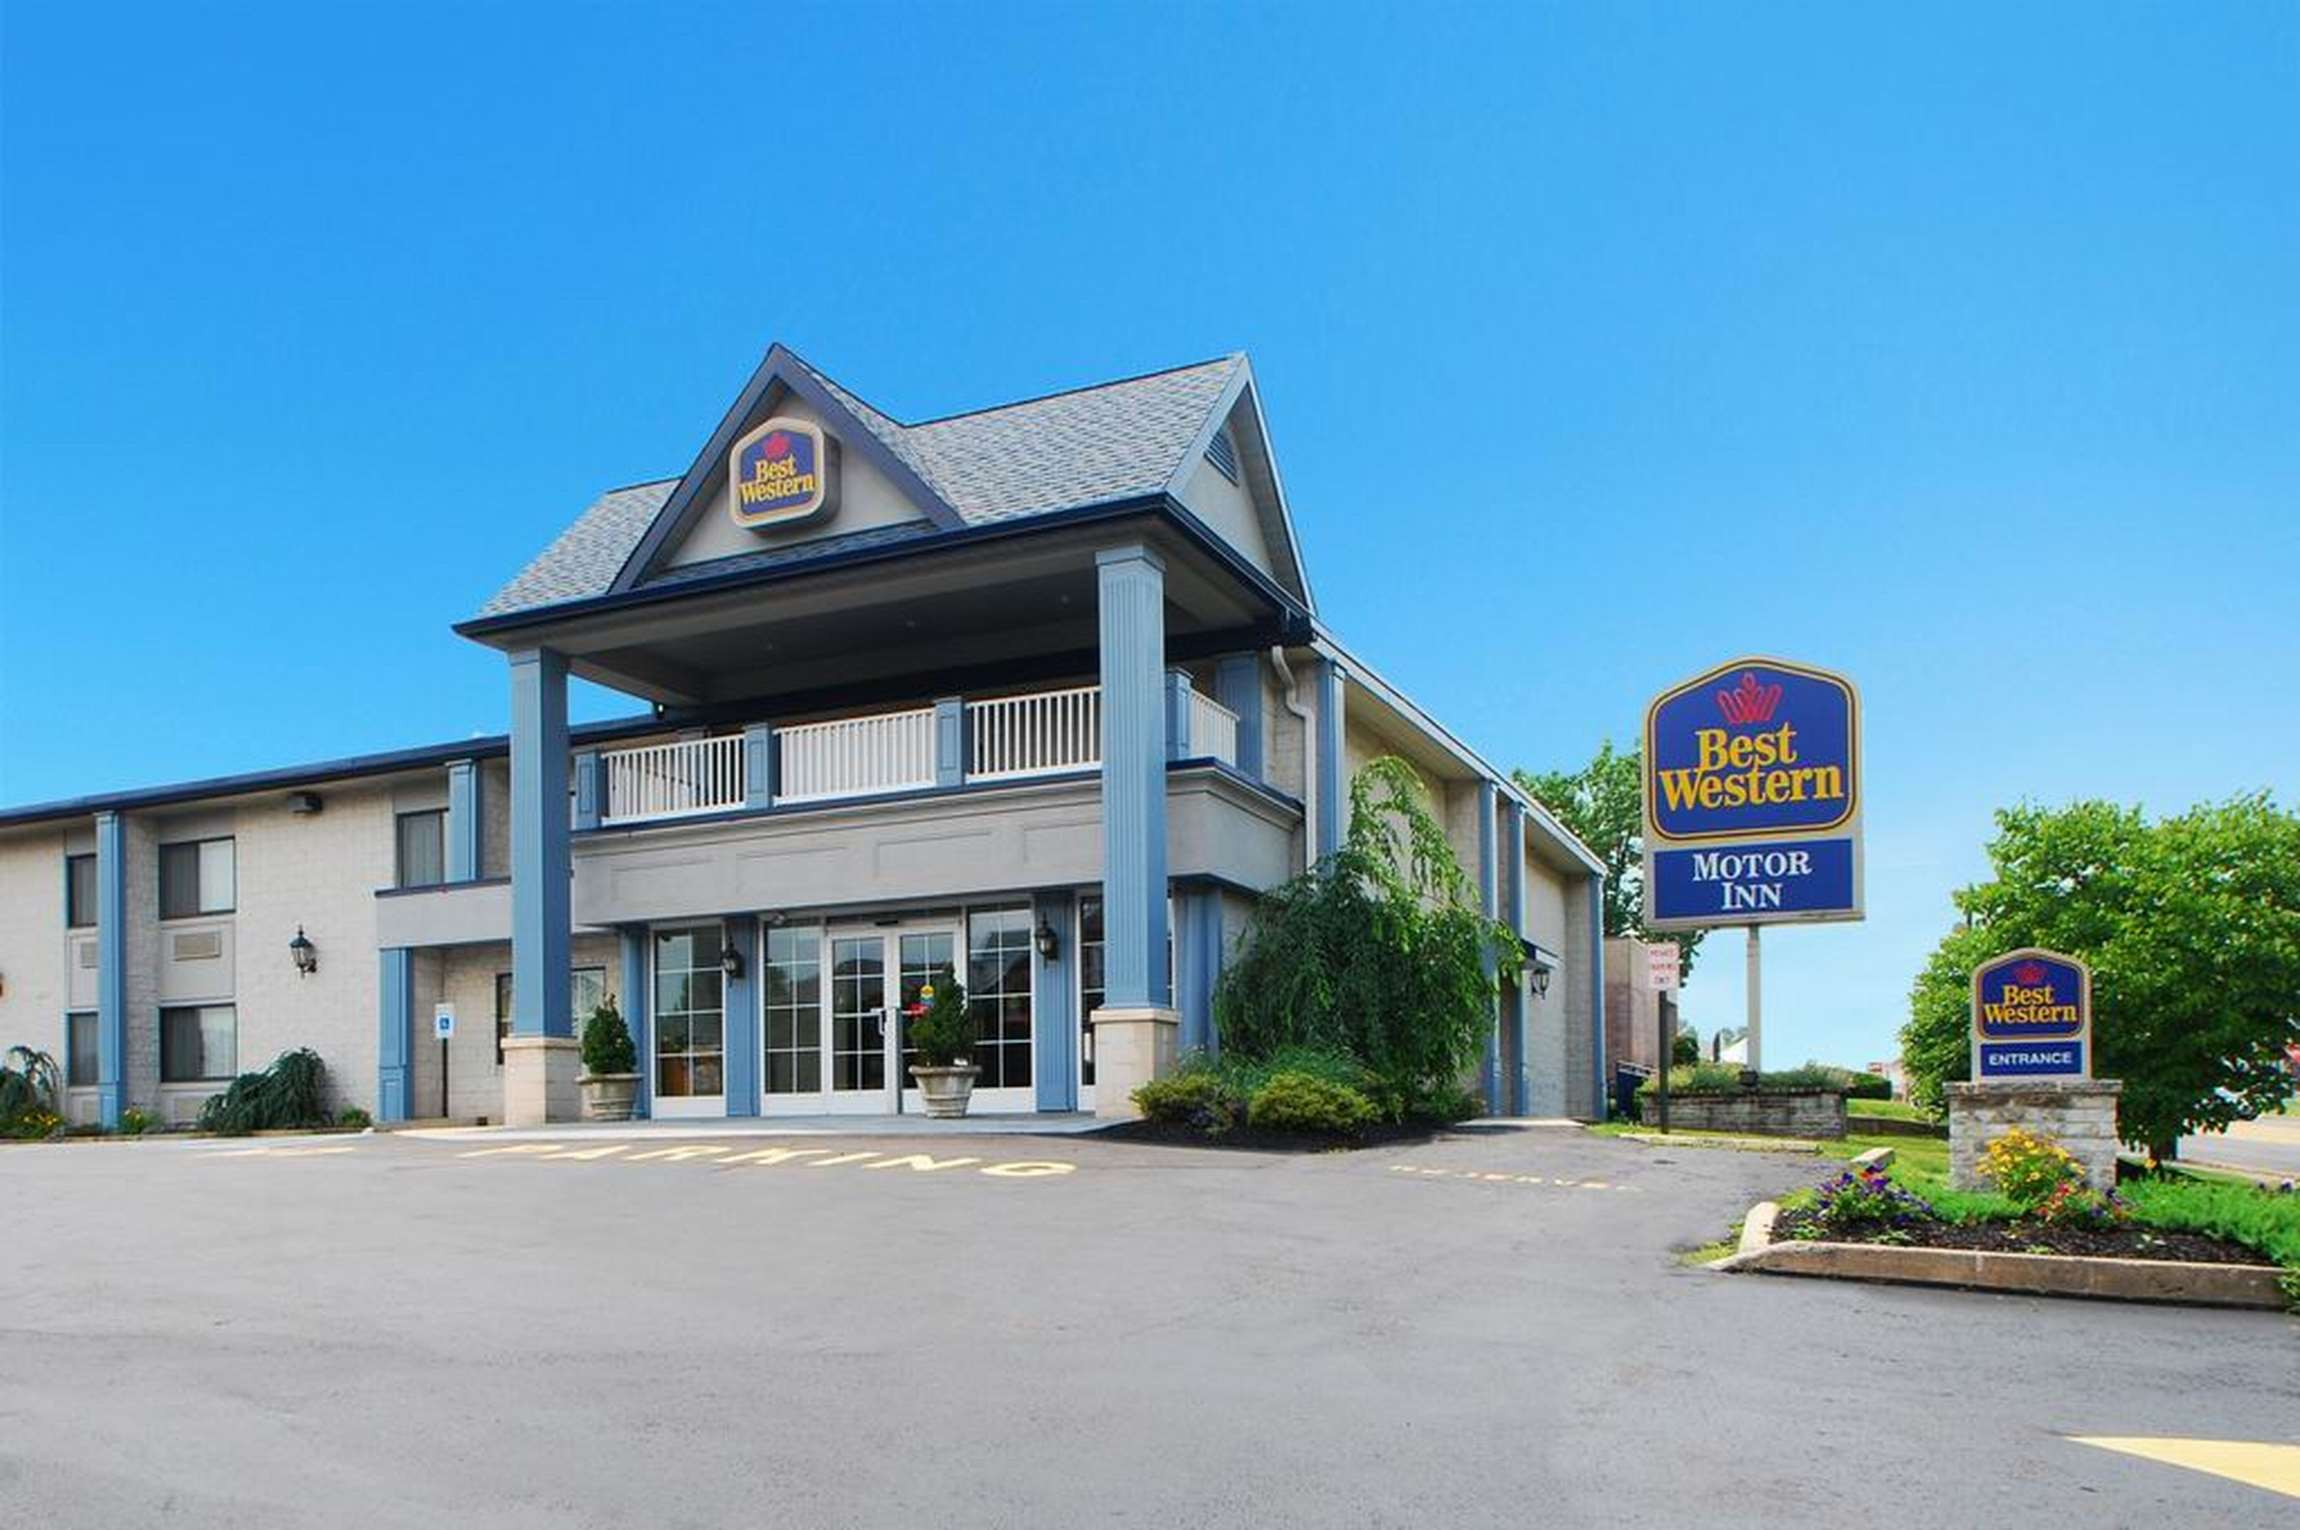 best western motor inn coupons near me in quakertown